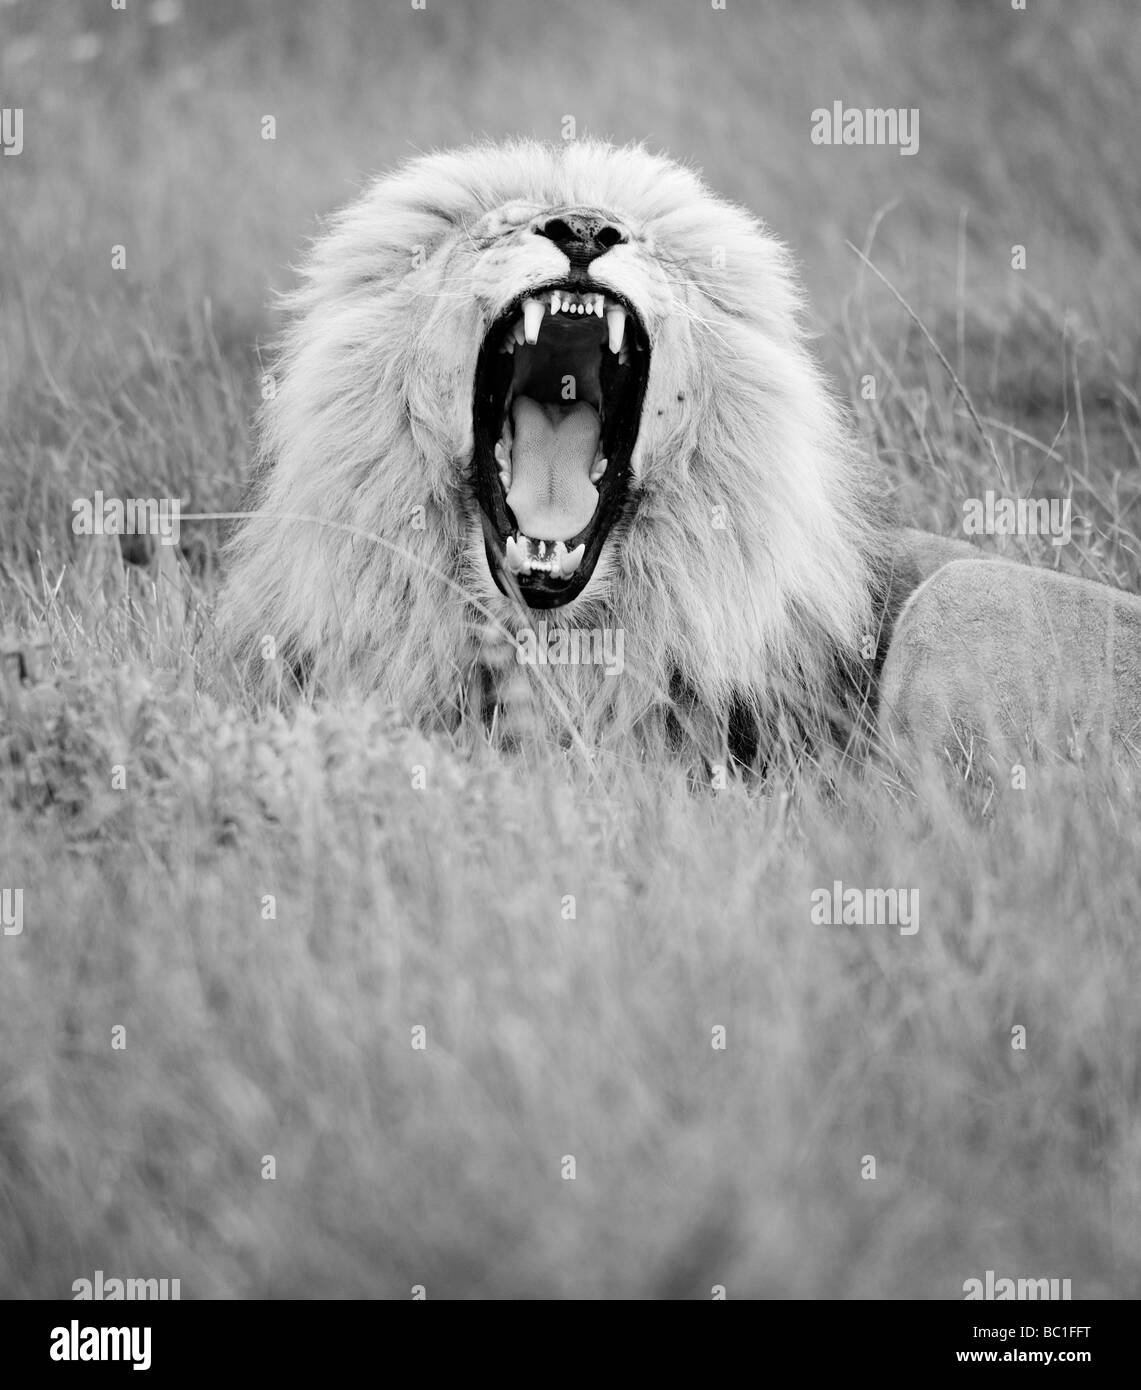 South Africa, Eastern Cape Province, Seaview Game and Lion Park. - Stock Image